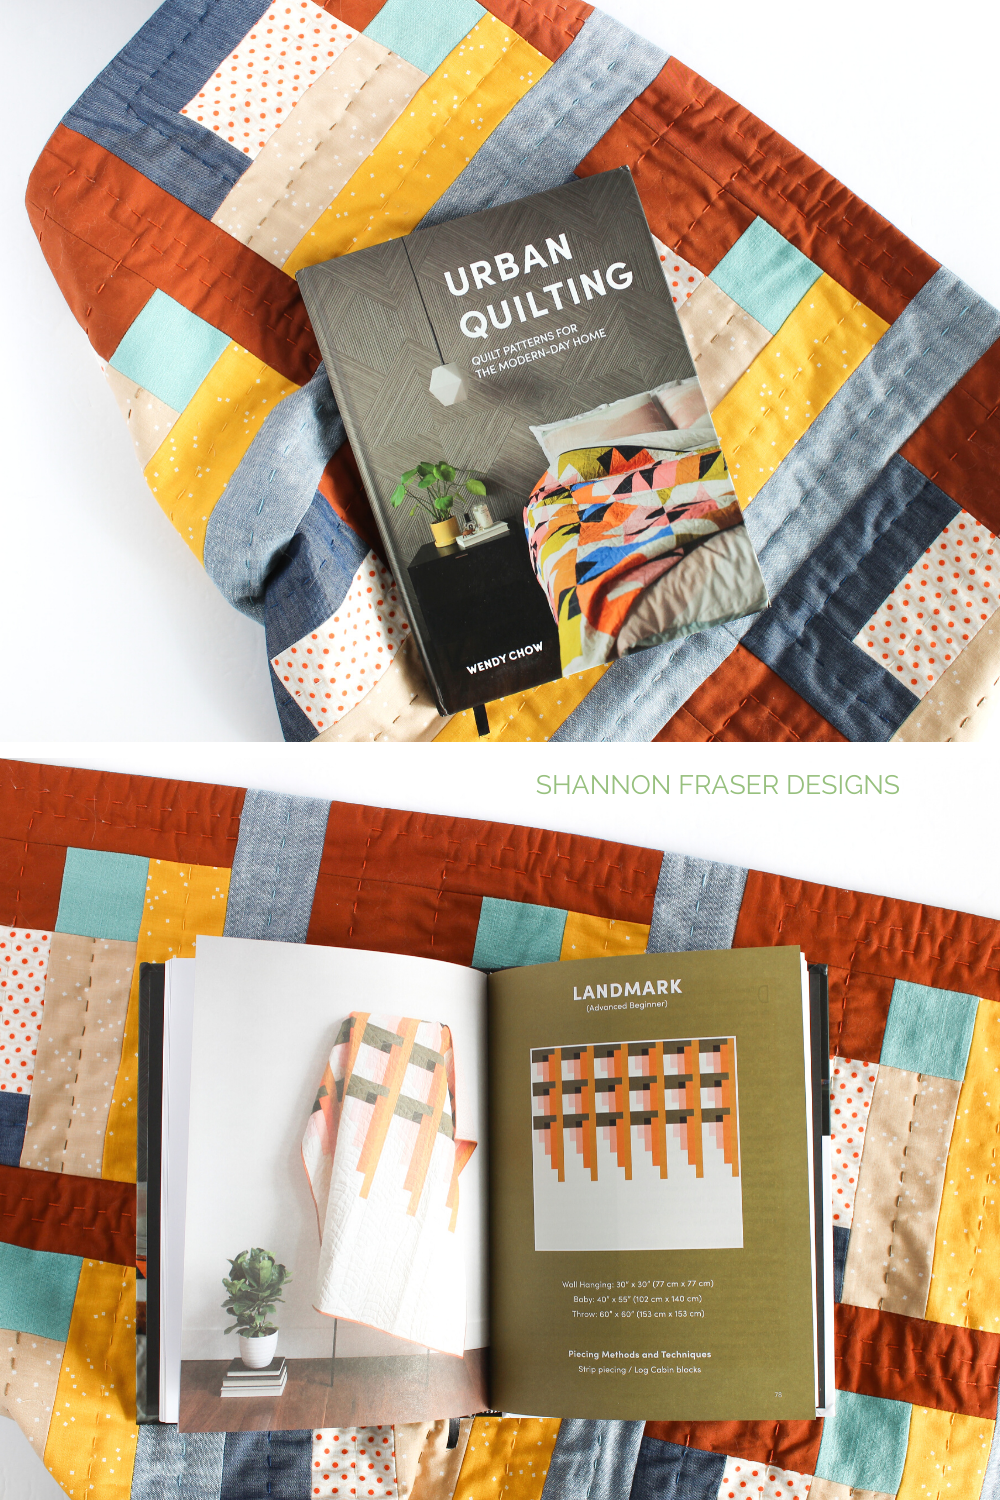 Urban Quilting Book sitting on top of the hand quilted Landmark wall hanging and then showing the Landmark pattern in the book | Shannon Fraser Designs #quiltbook